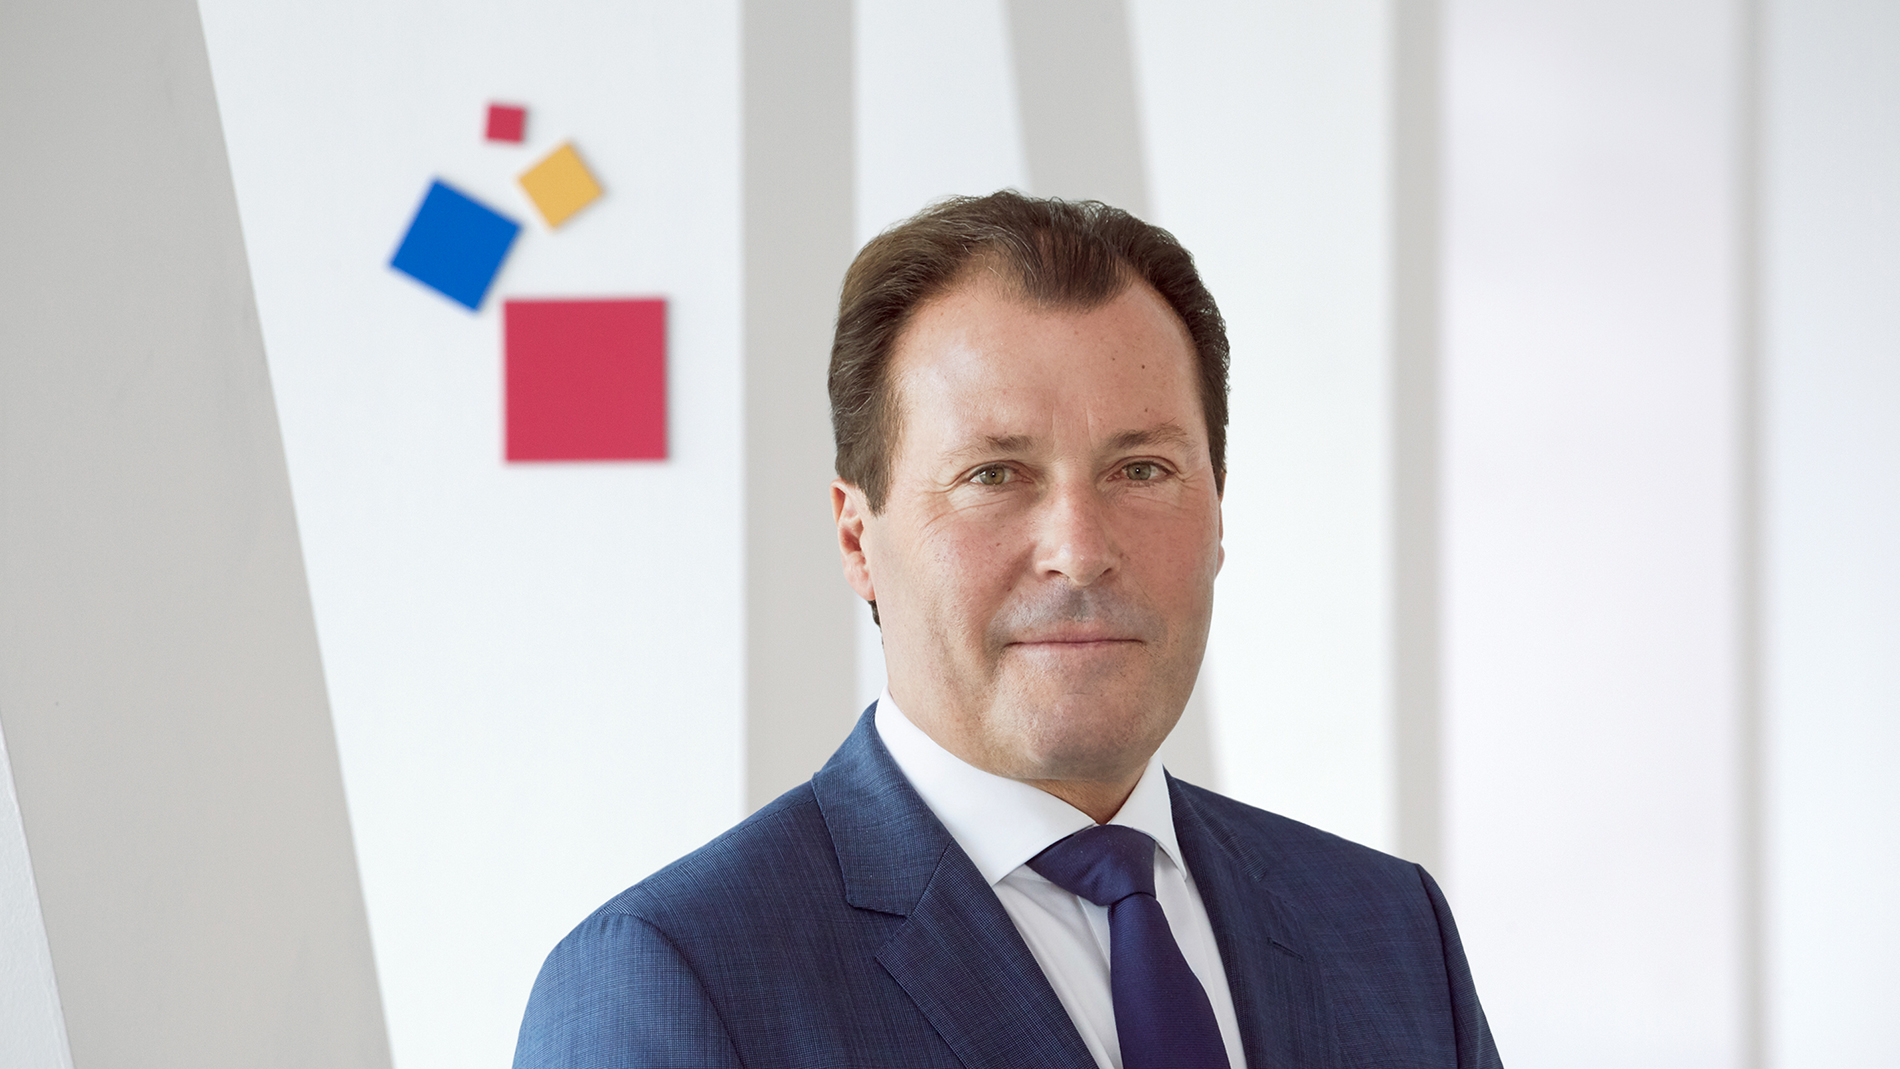 Wolfgang Marzin, President and CEO of Messe Frankfurt GmbH (Source: Messe Frankfurt GmbH / Sutera)